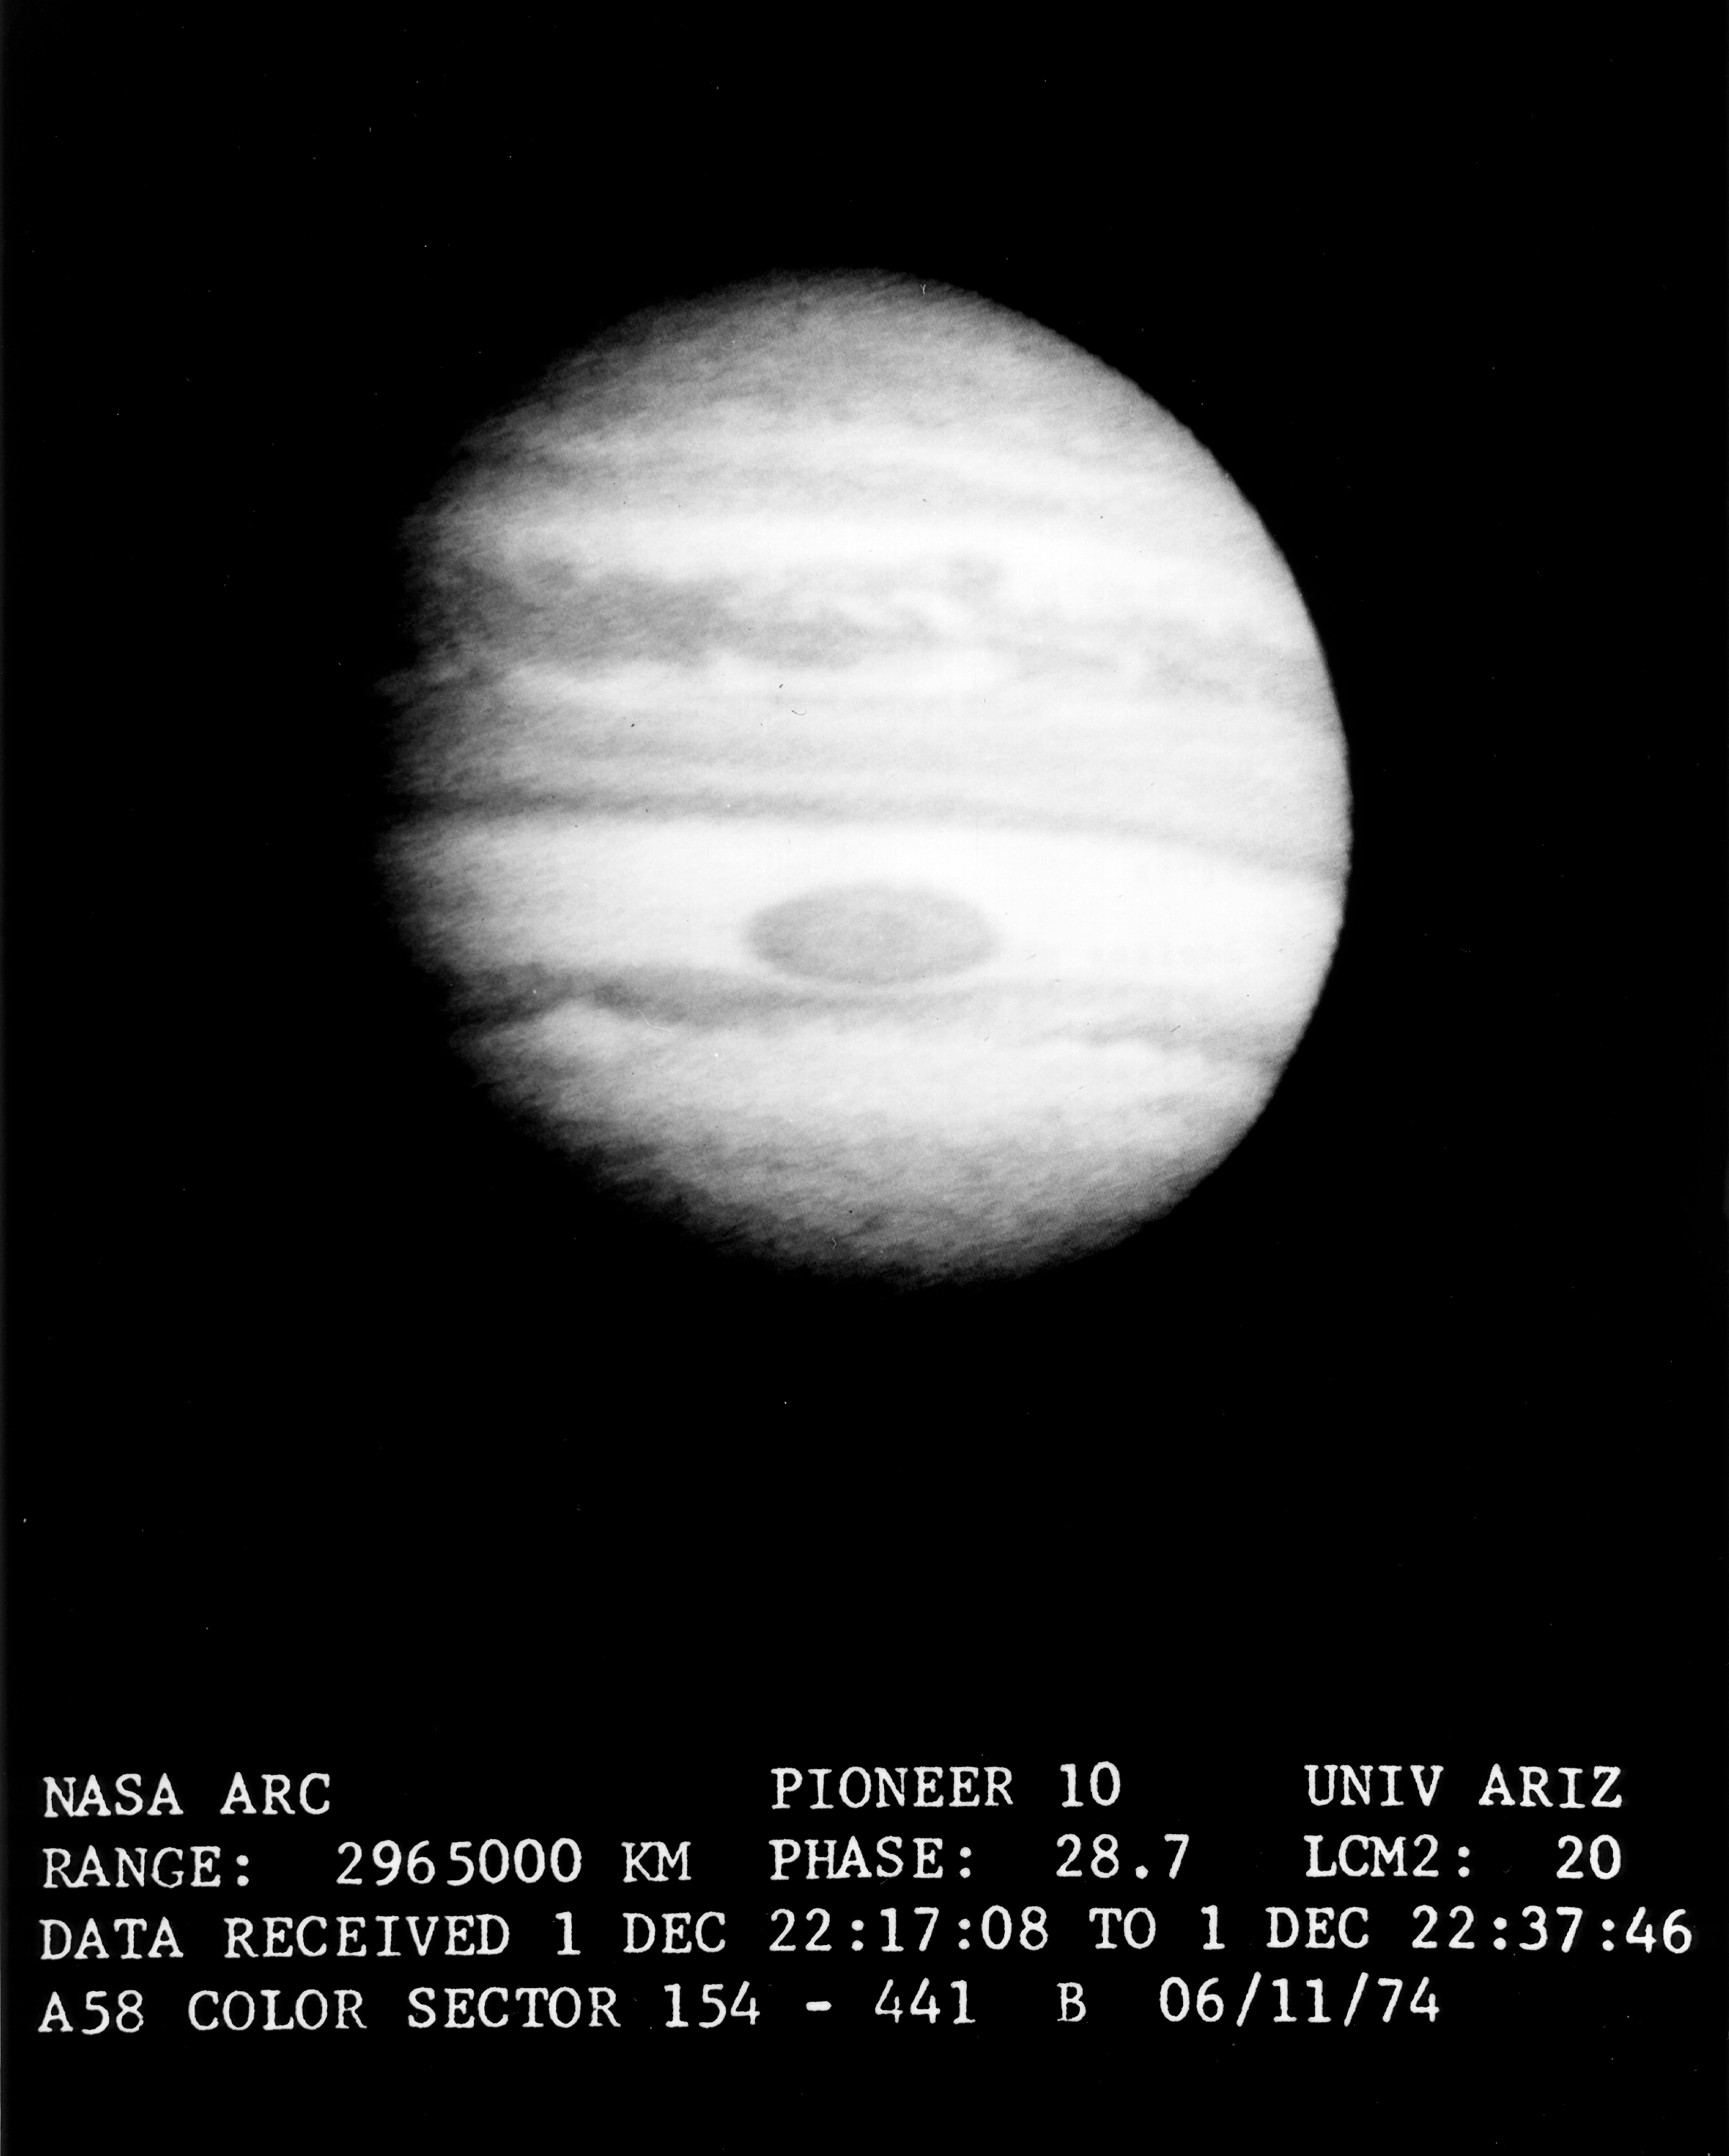 Data from Jupiter Gathered by the Pioneer 10 Spaceflight during the Mission